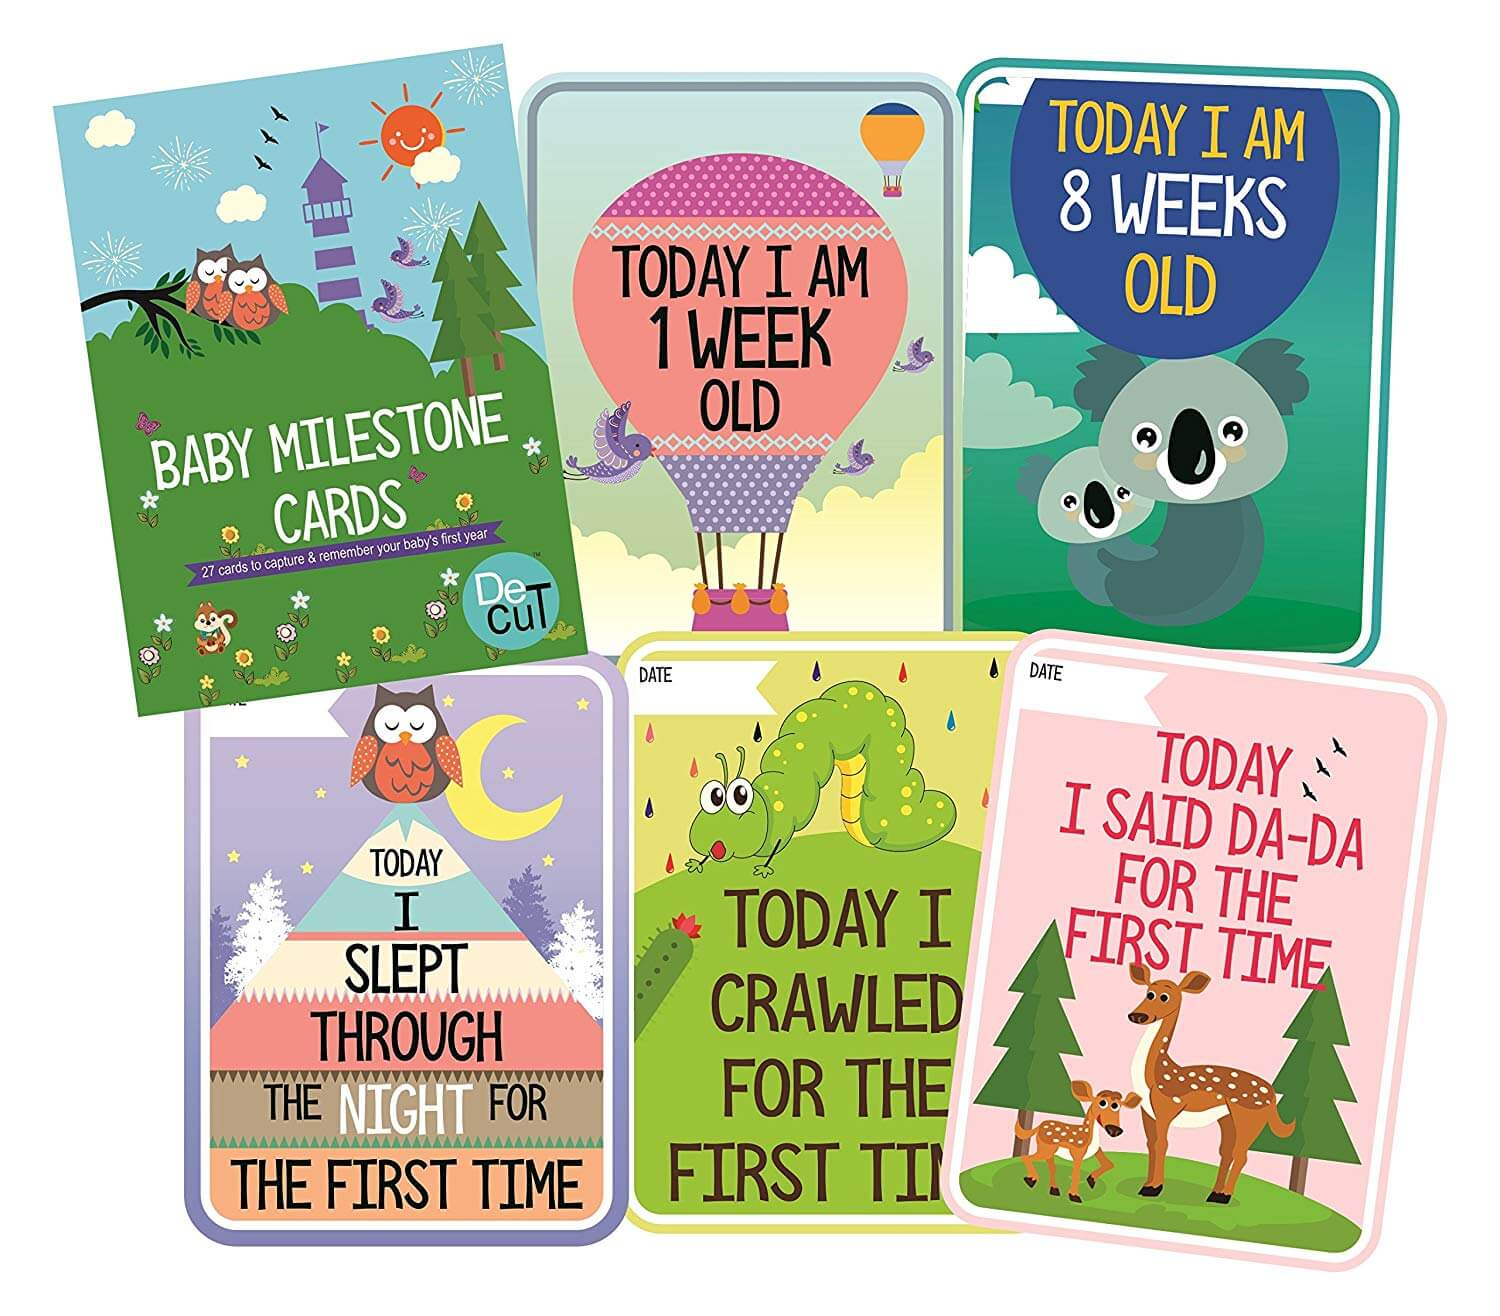 Milestone Cards pack of 27 cards